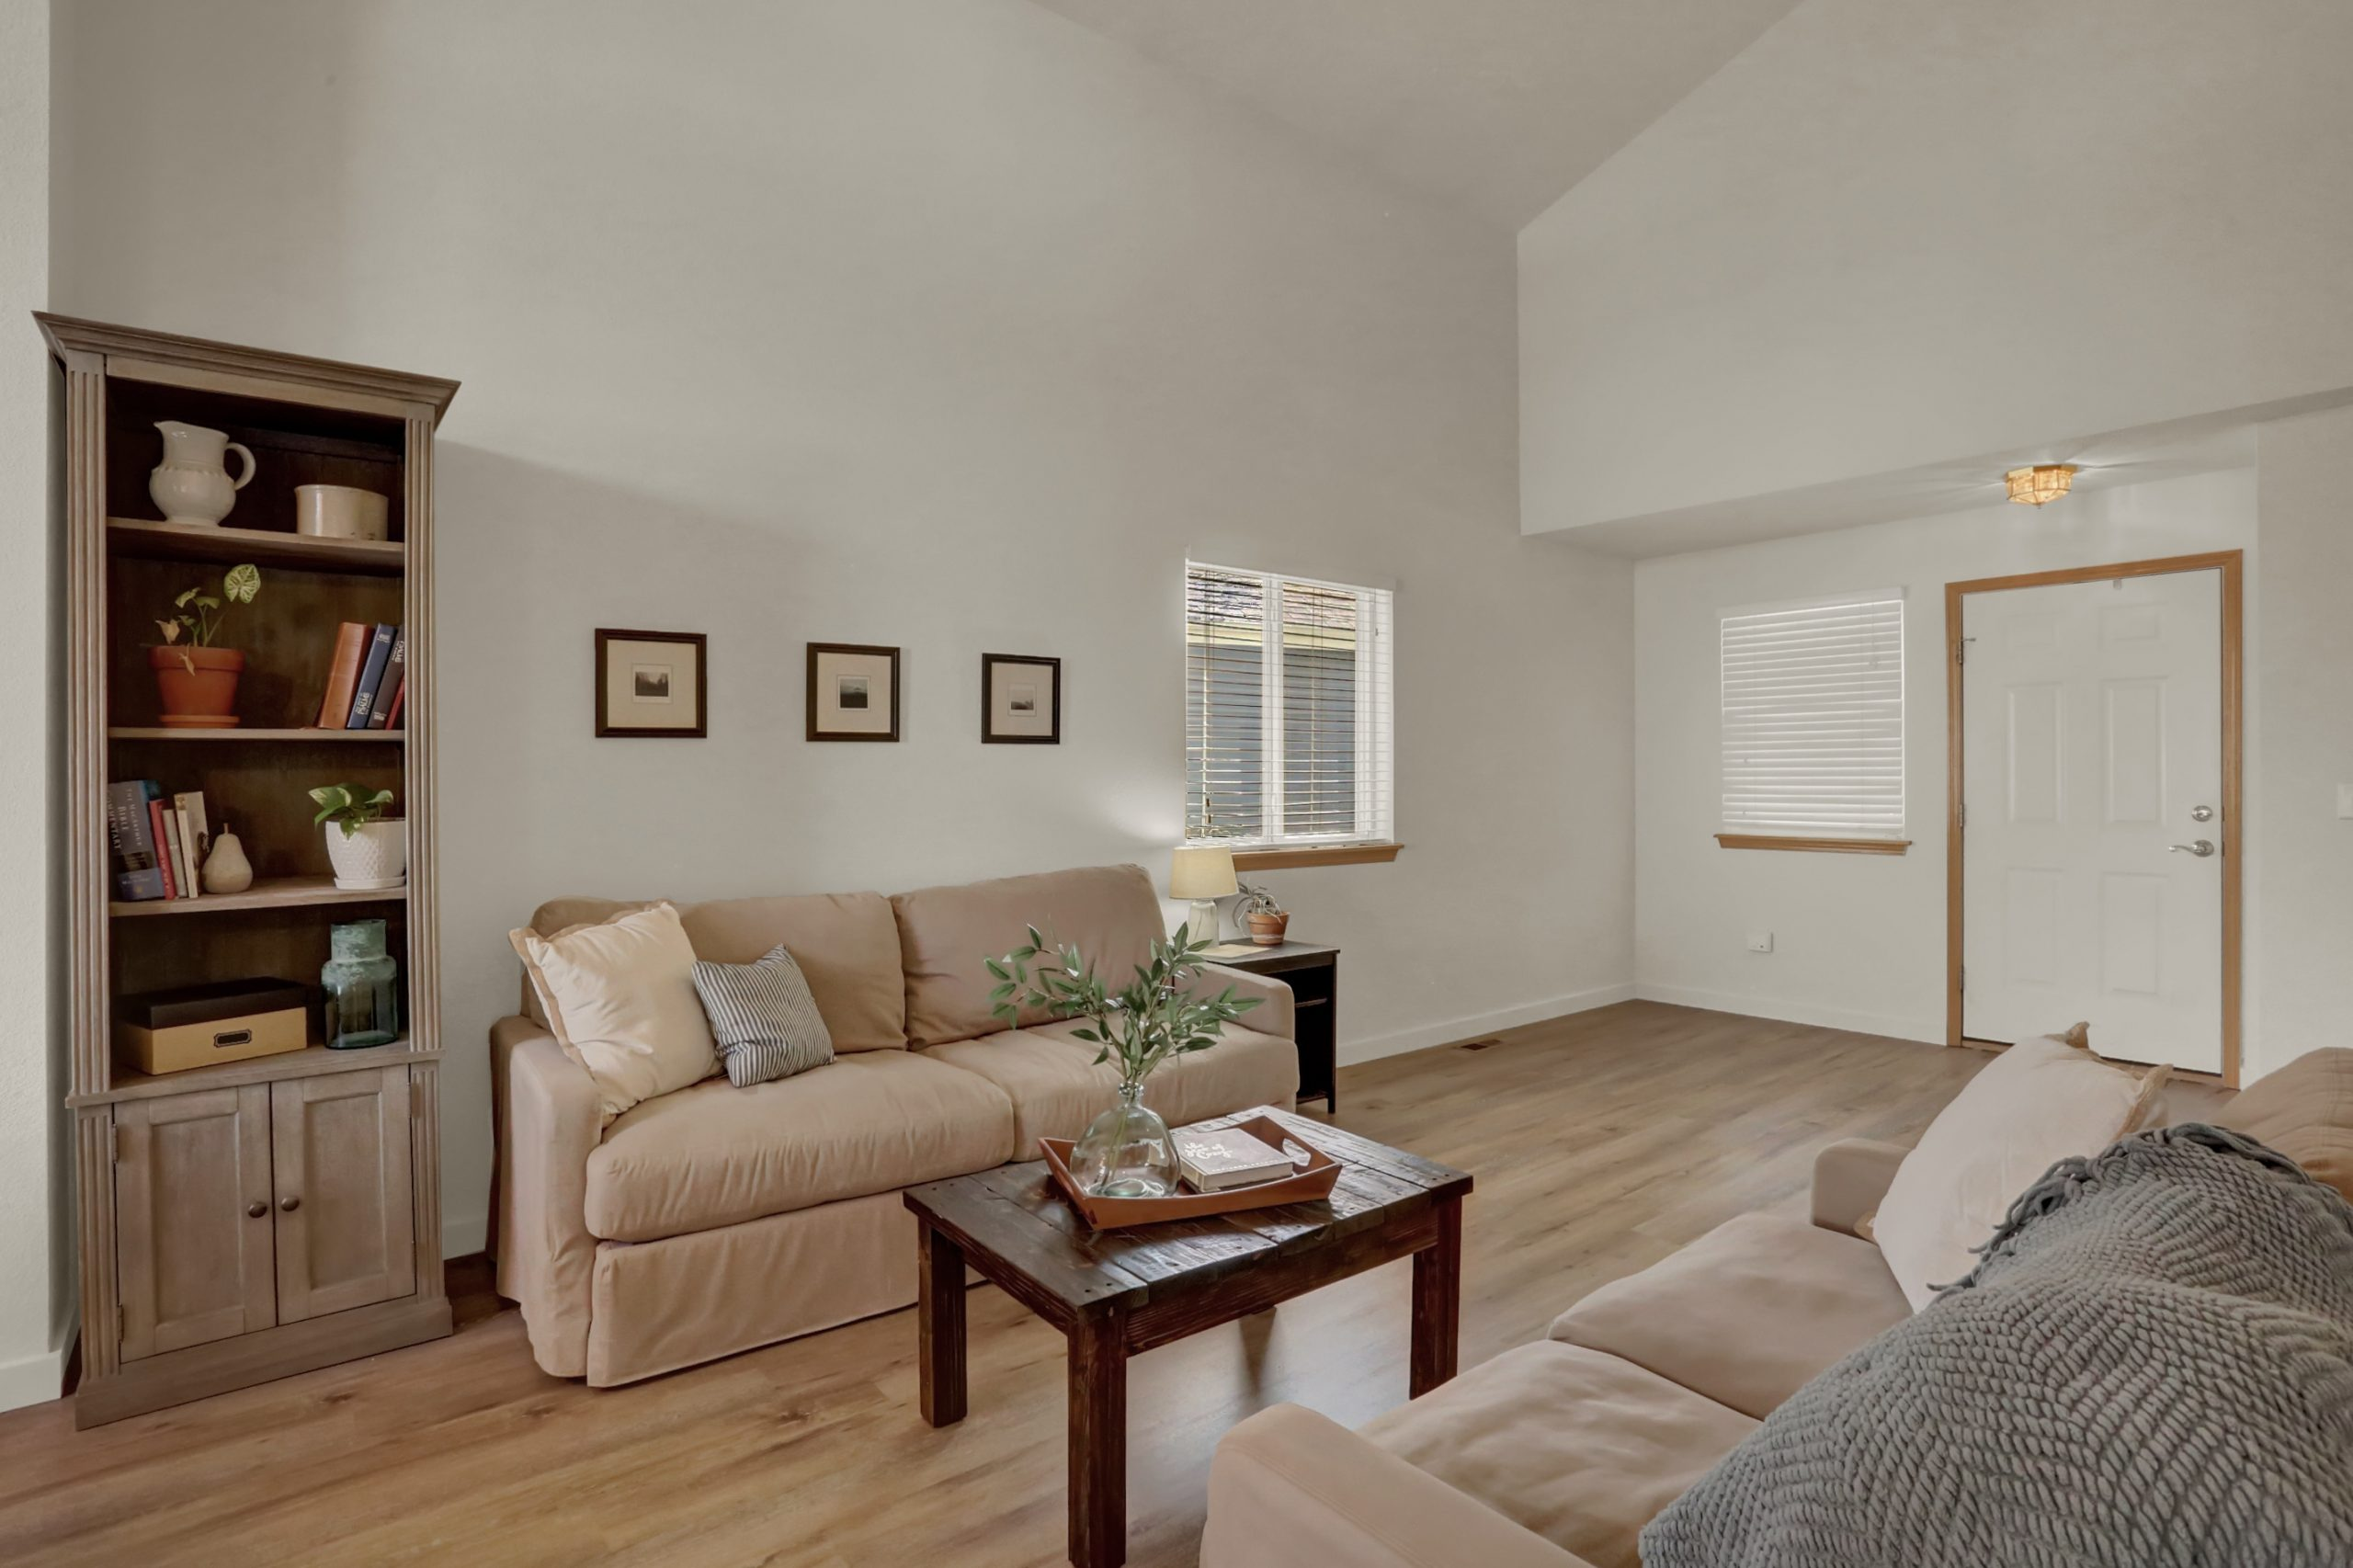 REAL ESTATE LISTING: 10502 Falcon St Firestone Living Room